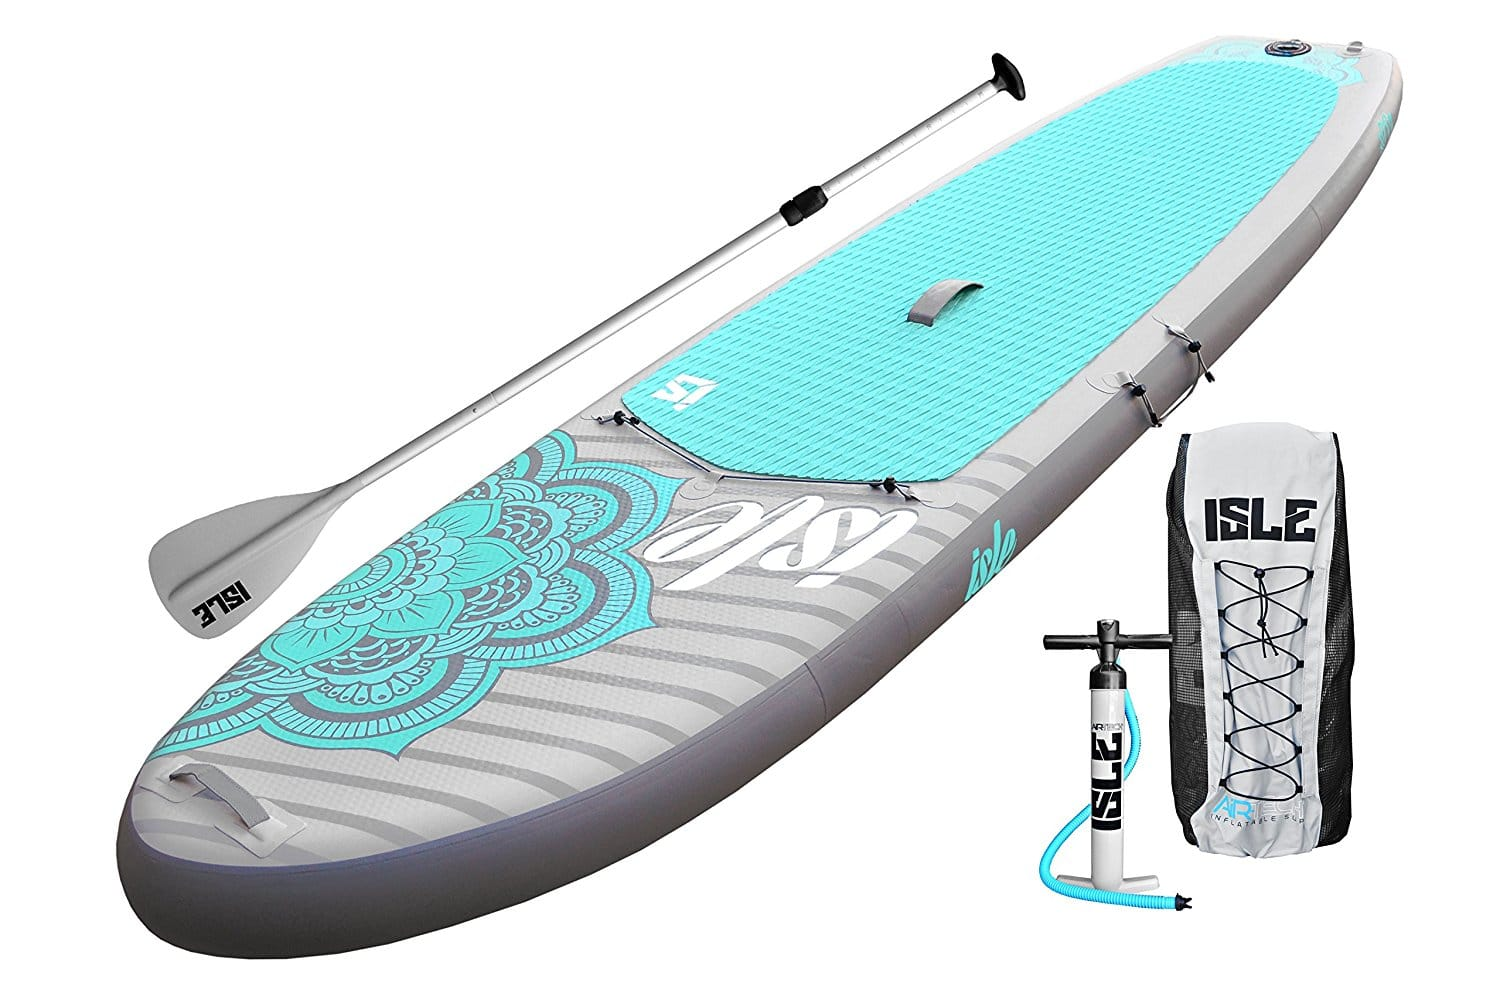 Isle Inflatable Yoga Paddle Board Review